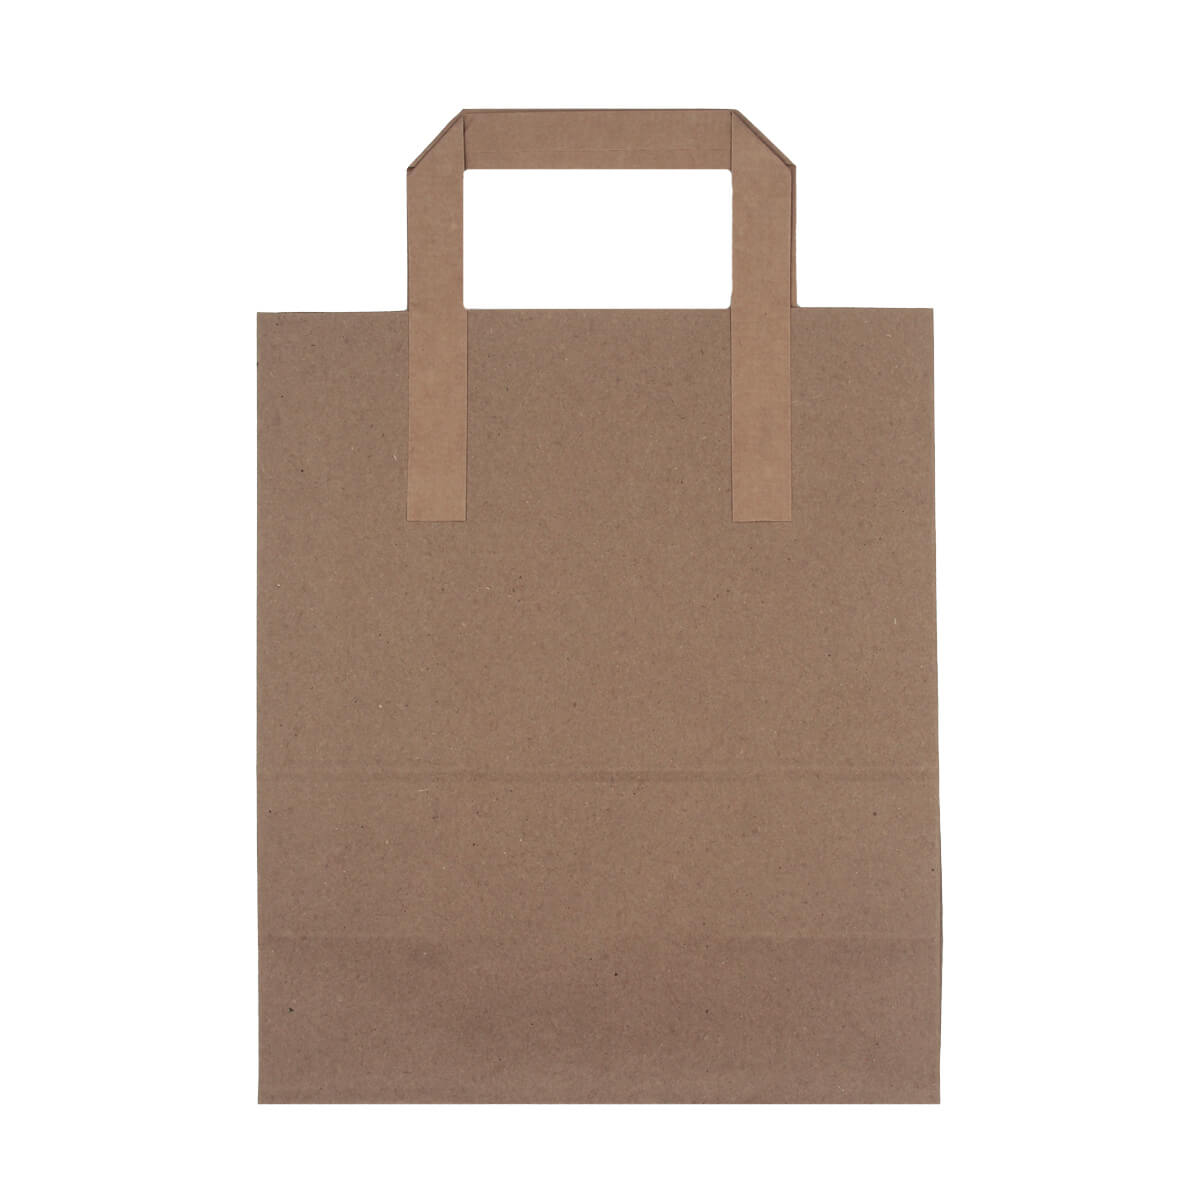 SMALL KRAFT CARRIER BAGS (SIZE 1)